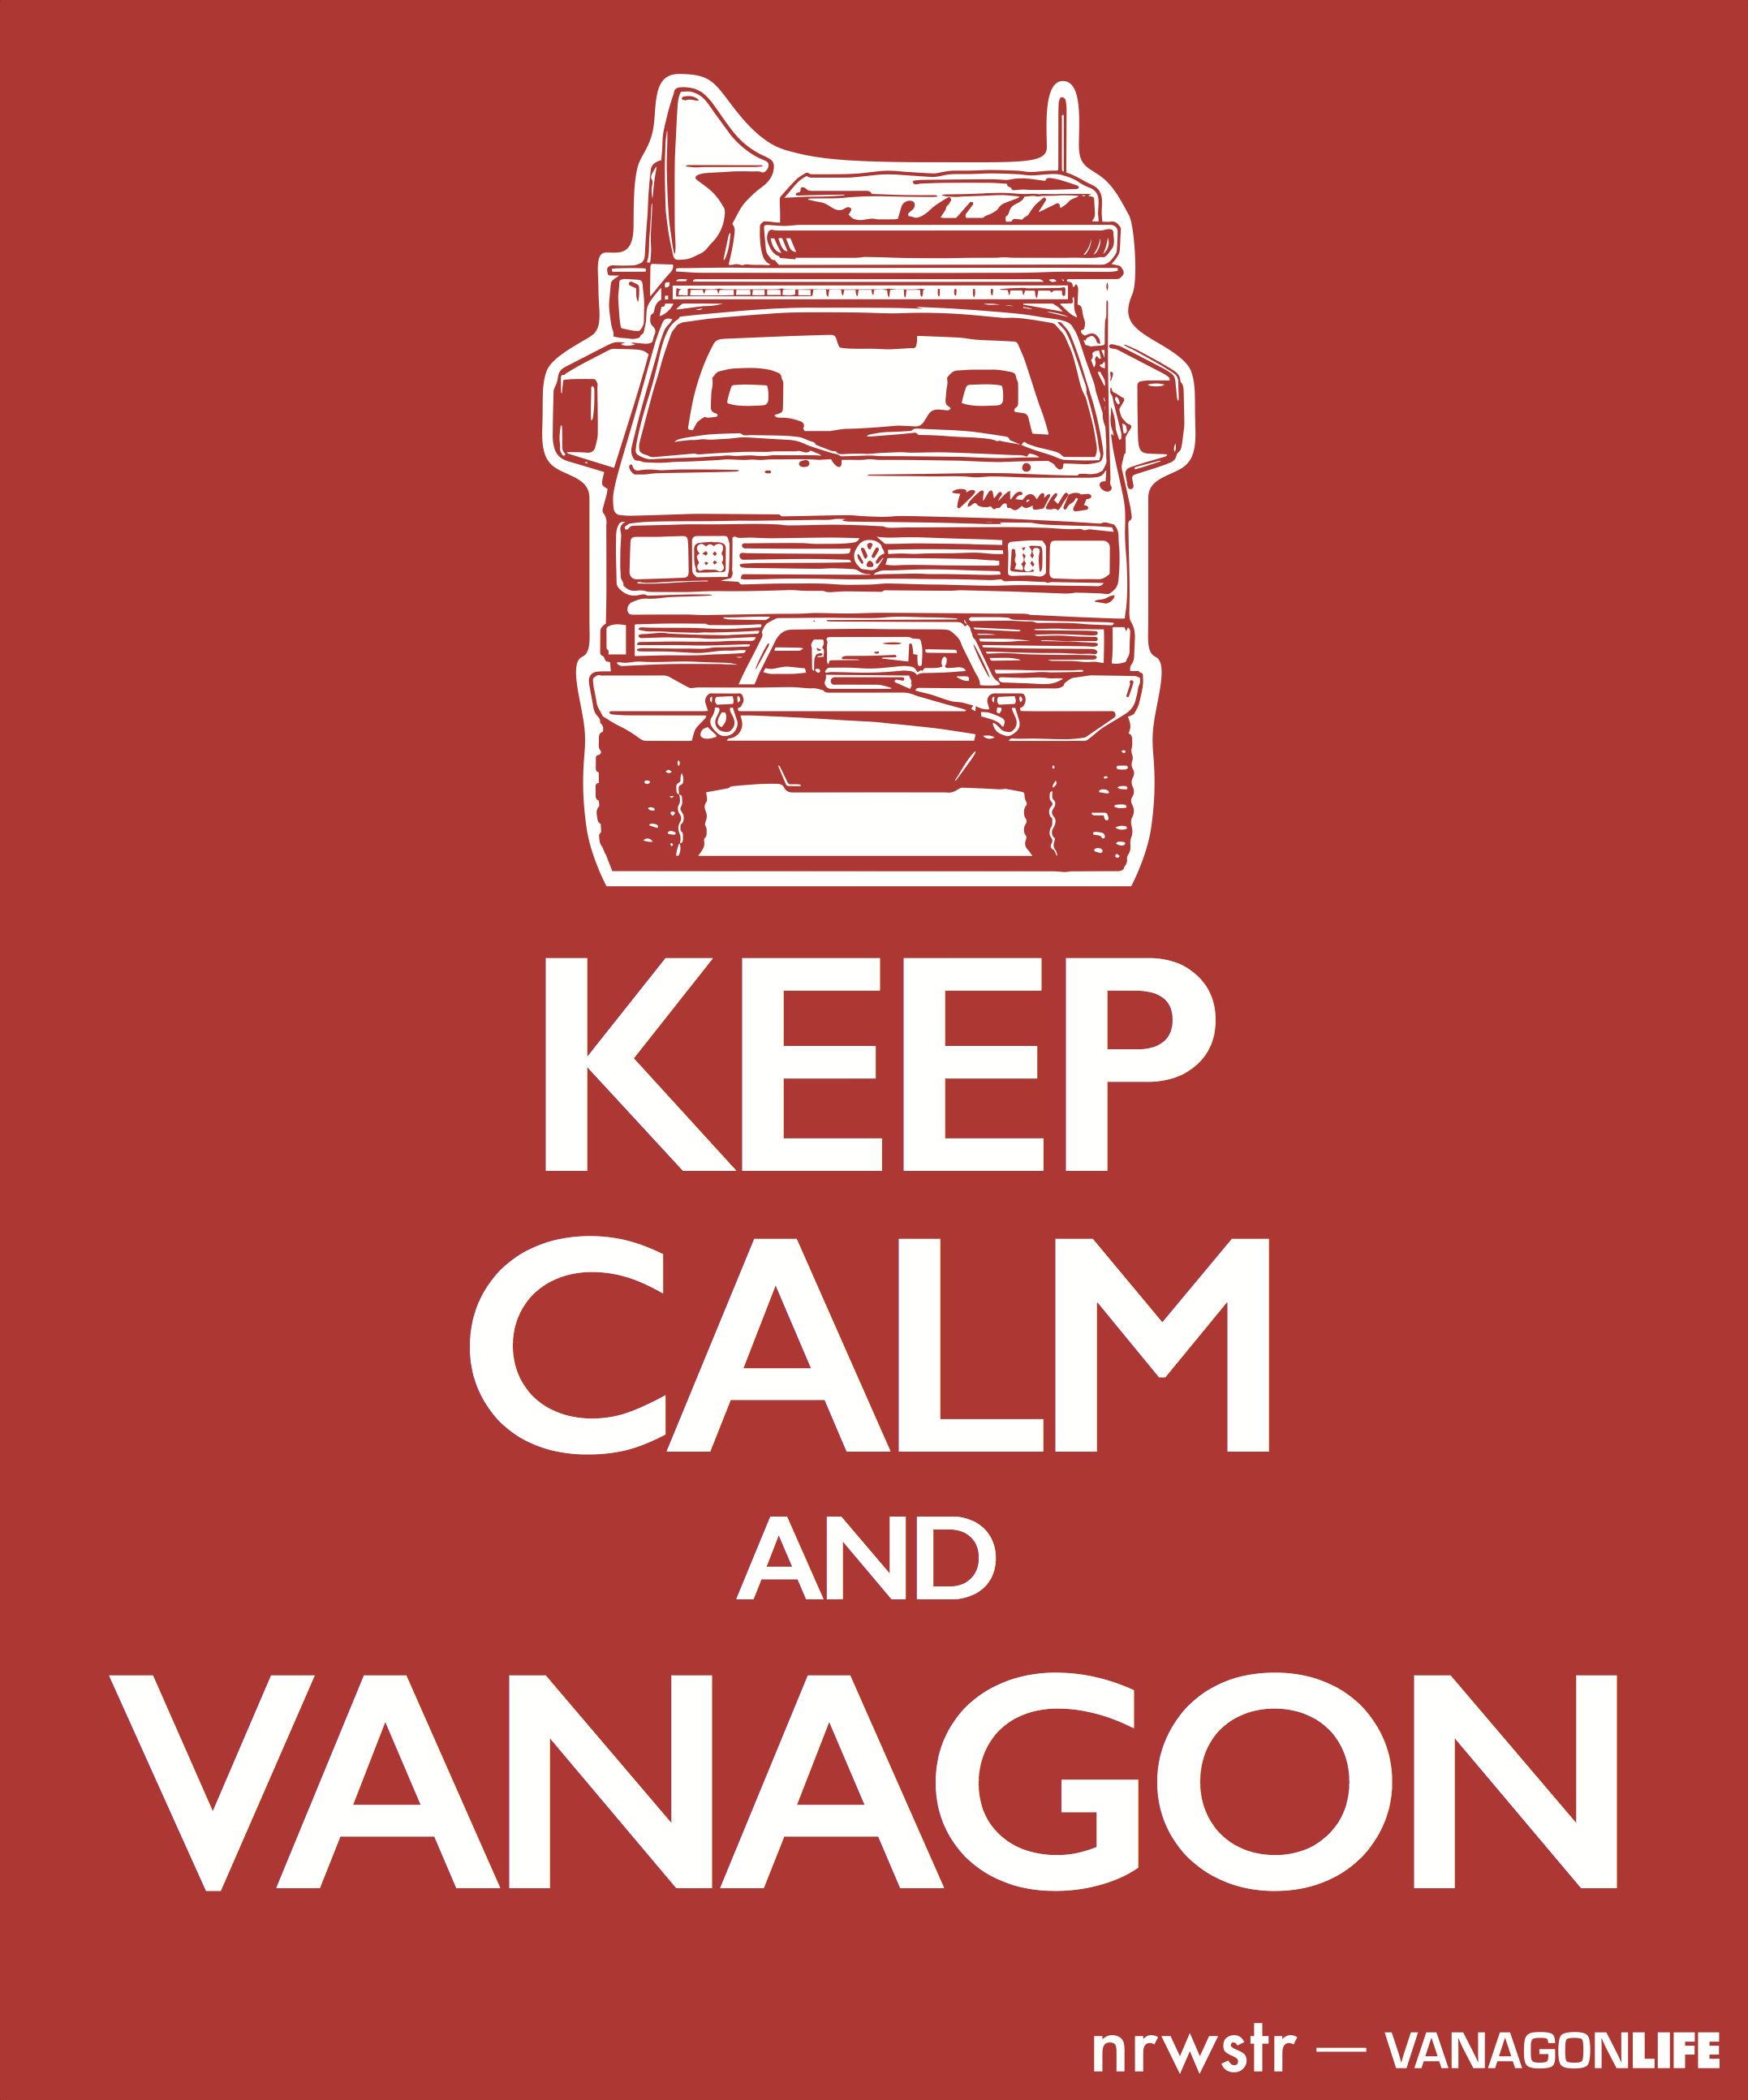 keep calm and vanagon.png